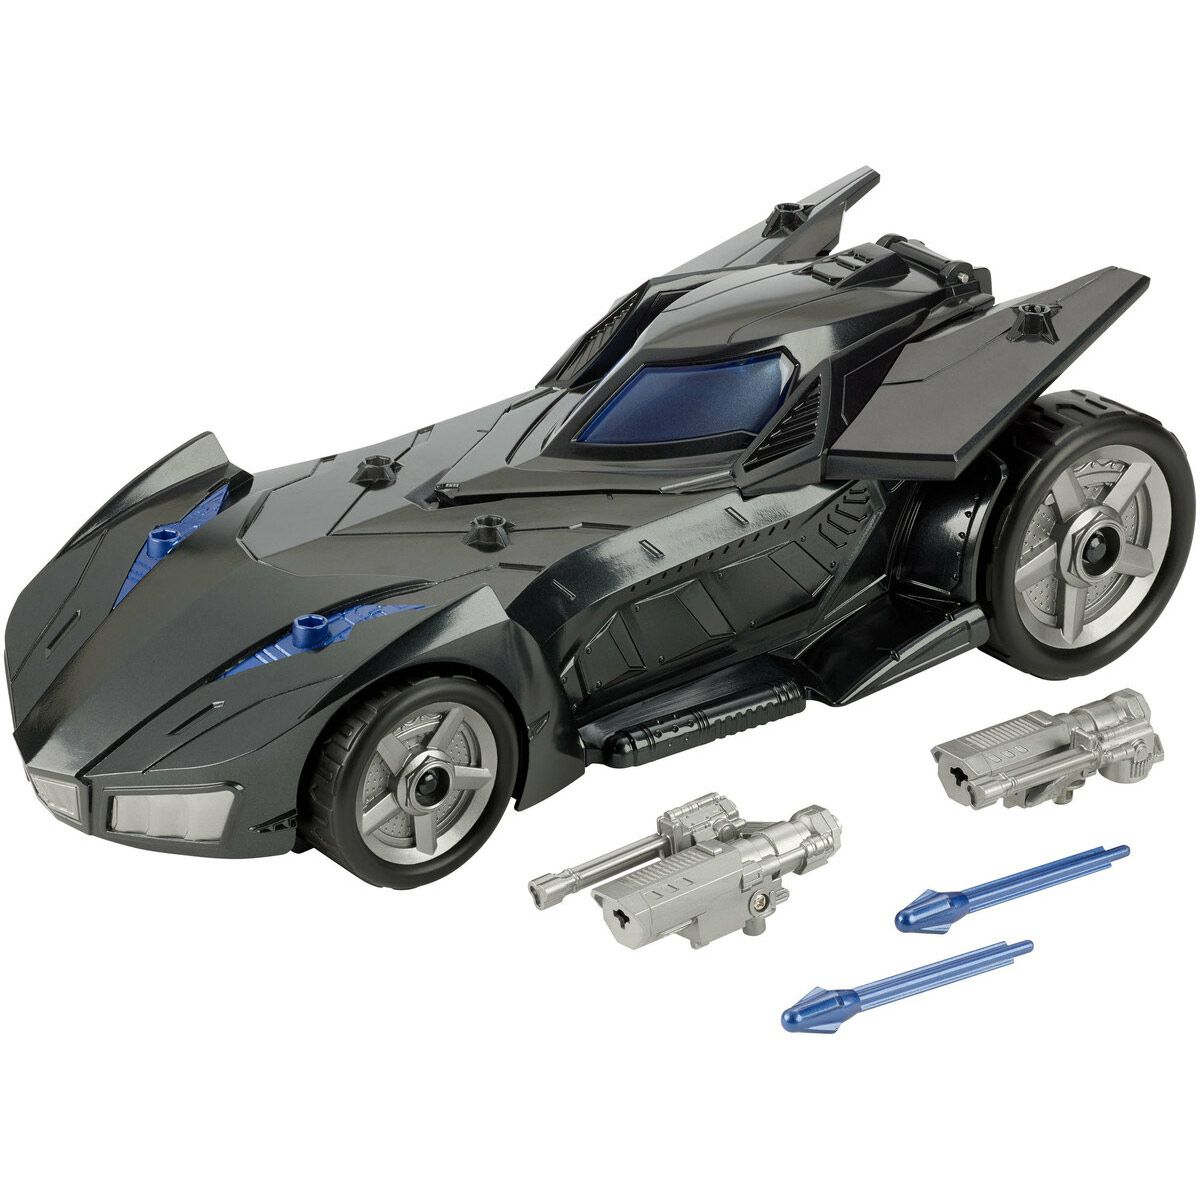 Batman Batmobile 30 Cm Vehicules Et Figurines La Grande Recre